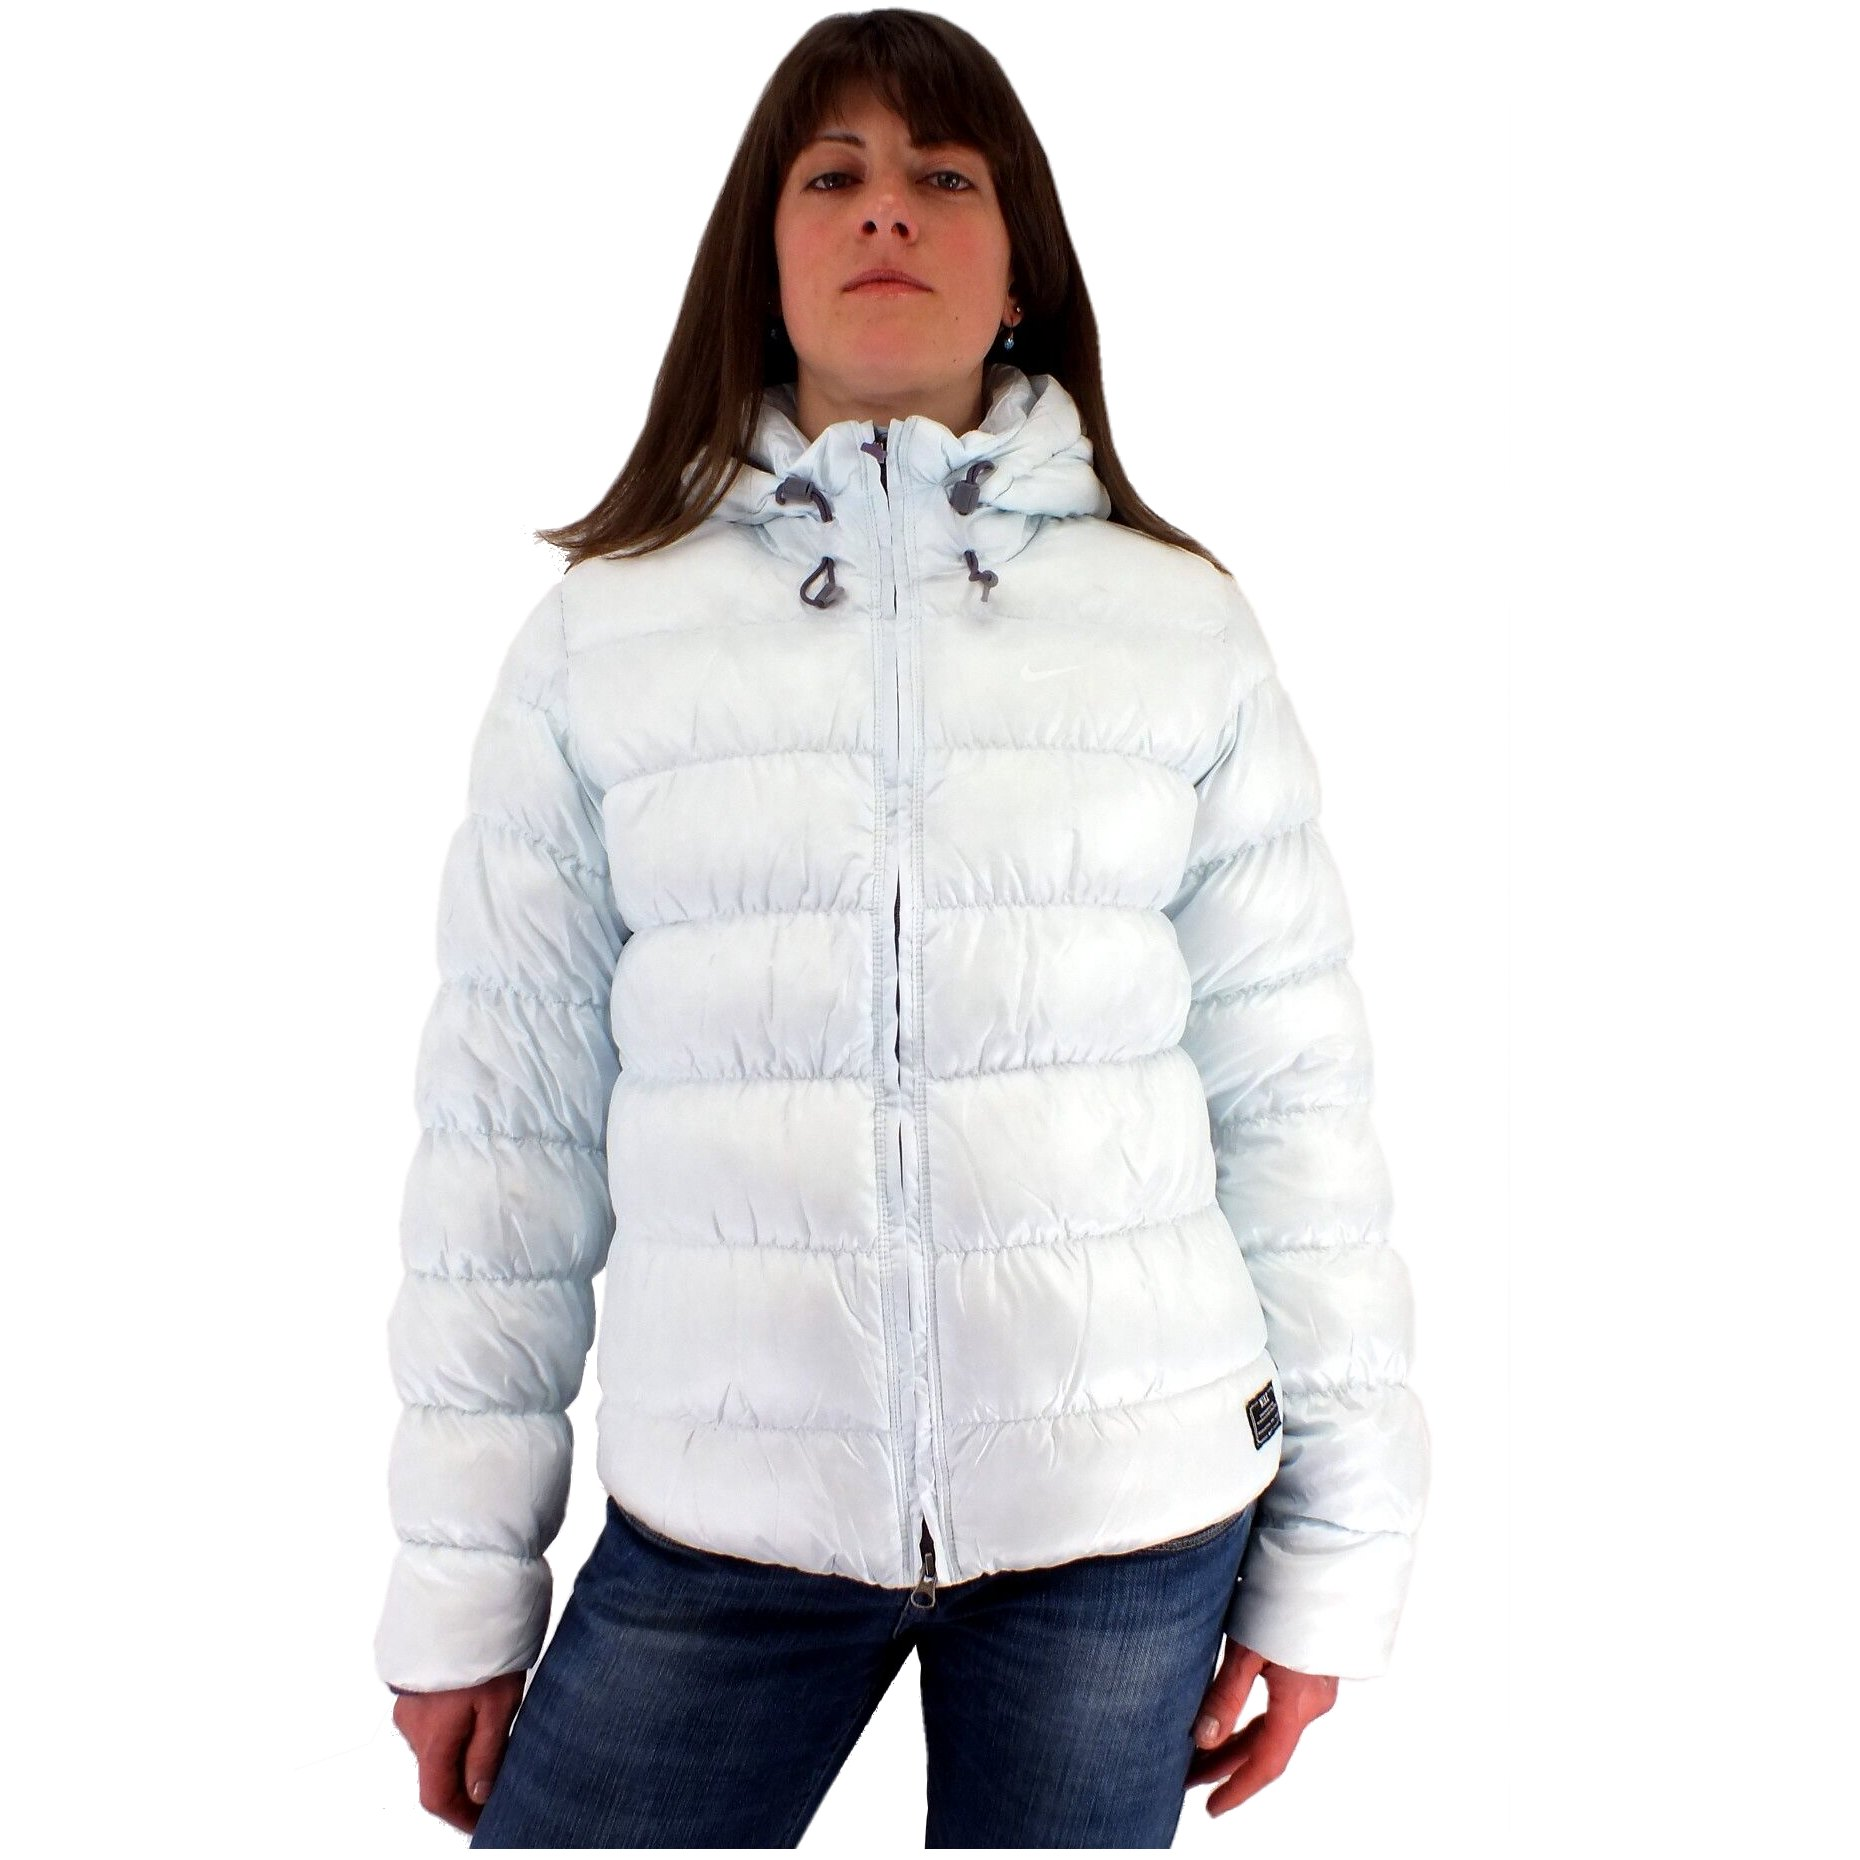 nike 800 fill down jacket silber damen daunenjacke 800er daune winterjacke ebay. Black Bedroom Furniture Sets. Home Design Ideas